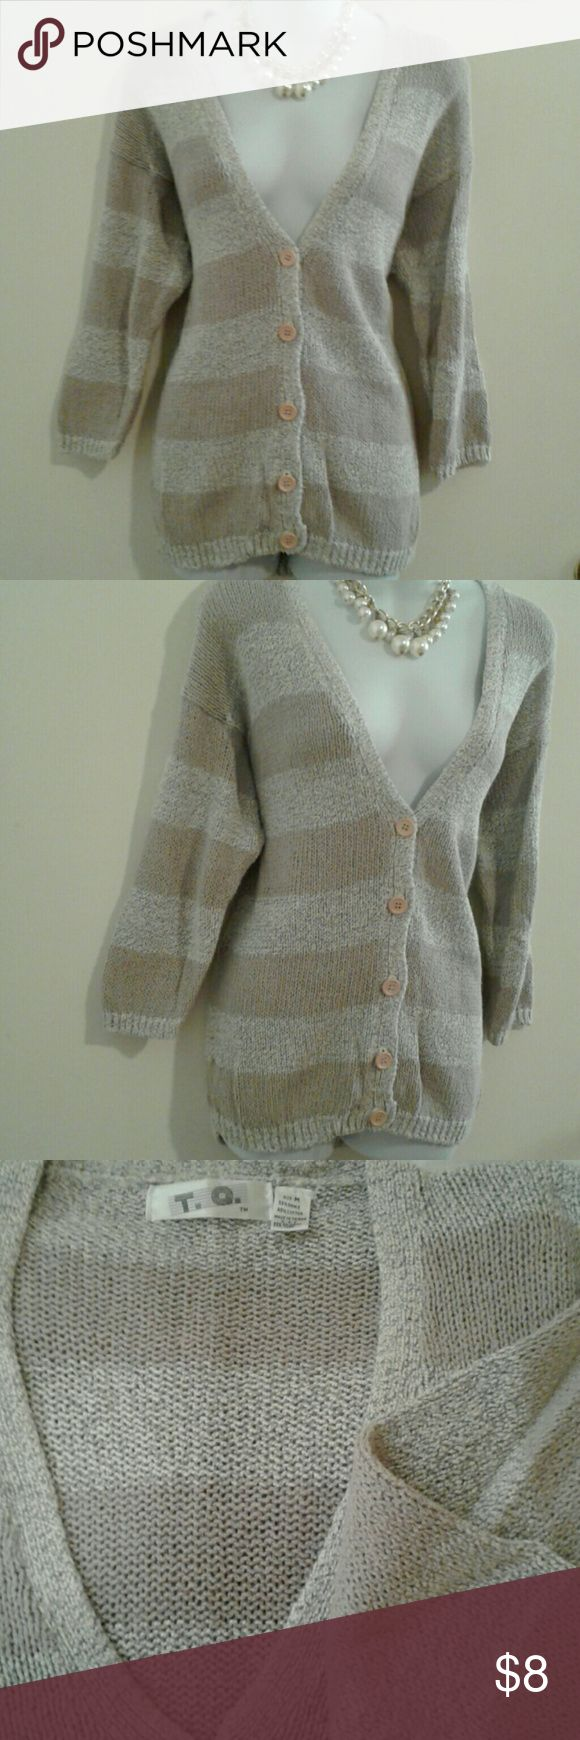 """Vintage Striped Button Up Cardigan Sweater Excellent condition  55% ramie-45% cotton Measures: 21"""" (arm pit to arm pit) Length: 29"""" (shoulder to bottom hem) T.Q. Sweaters Cardigans"""